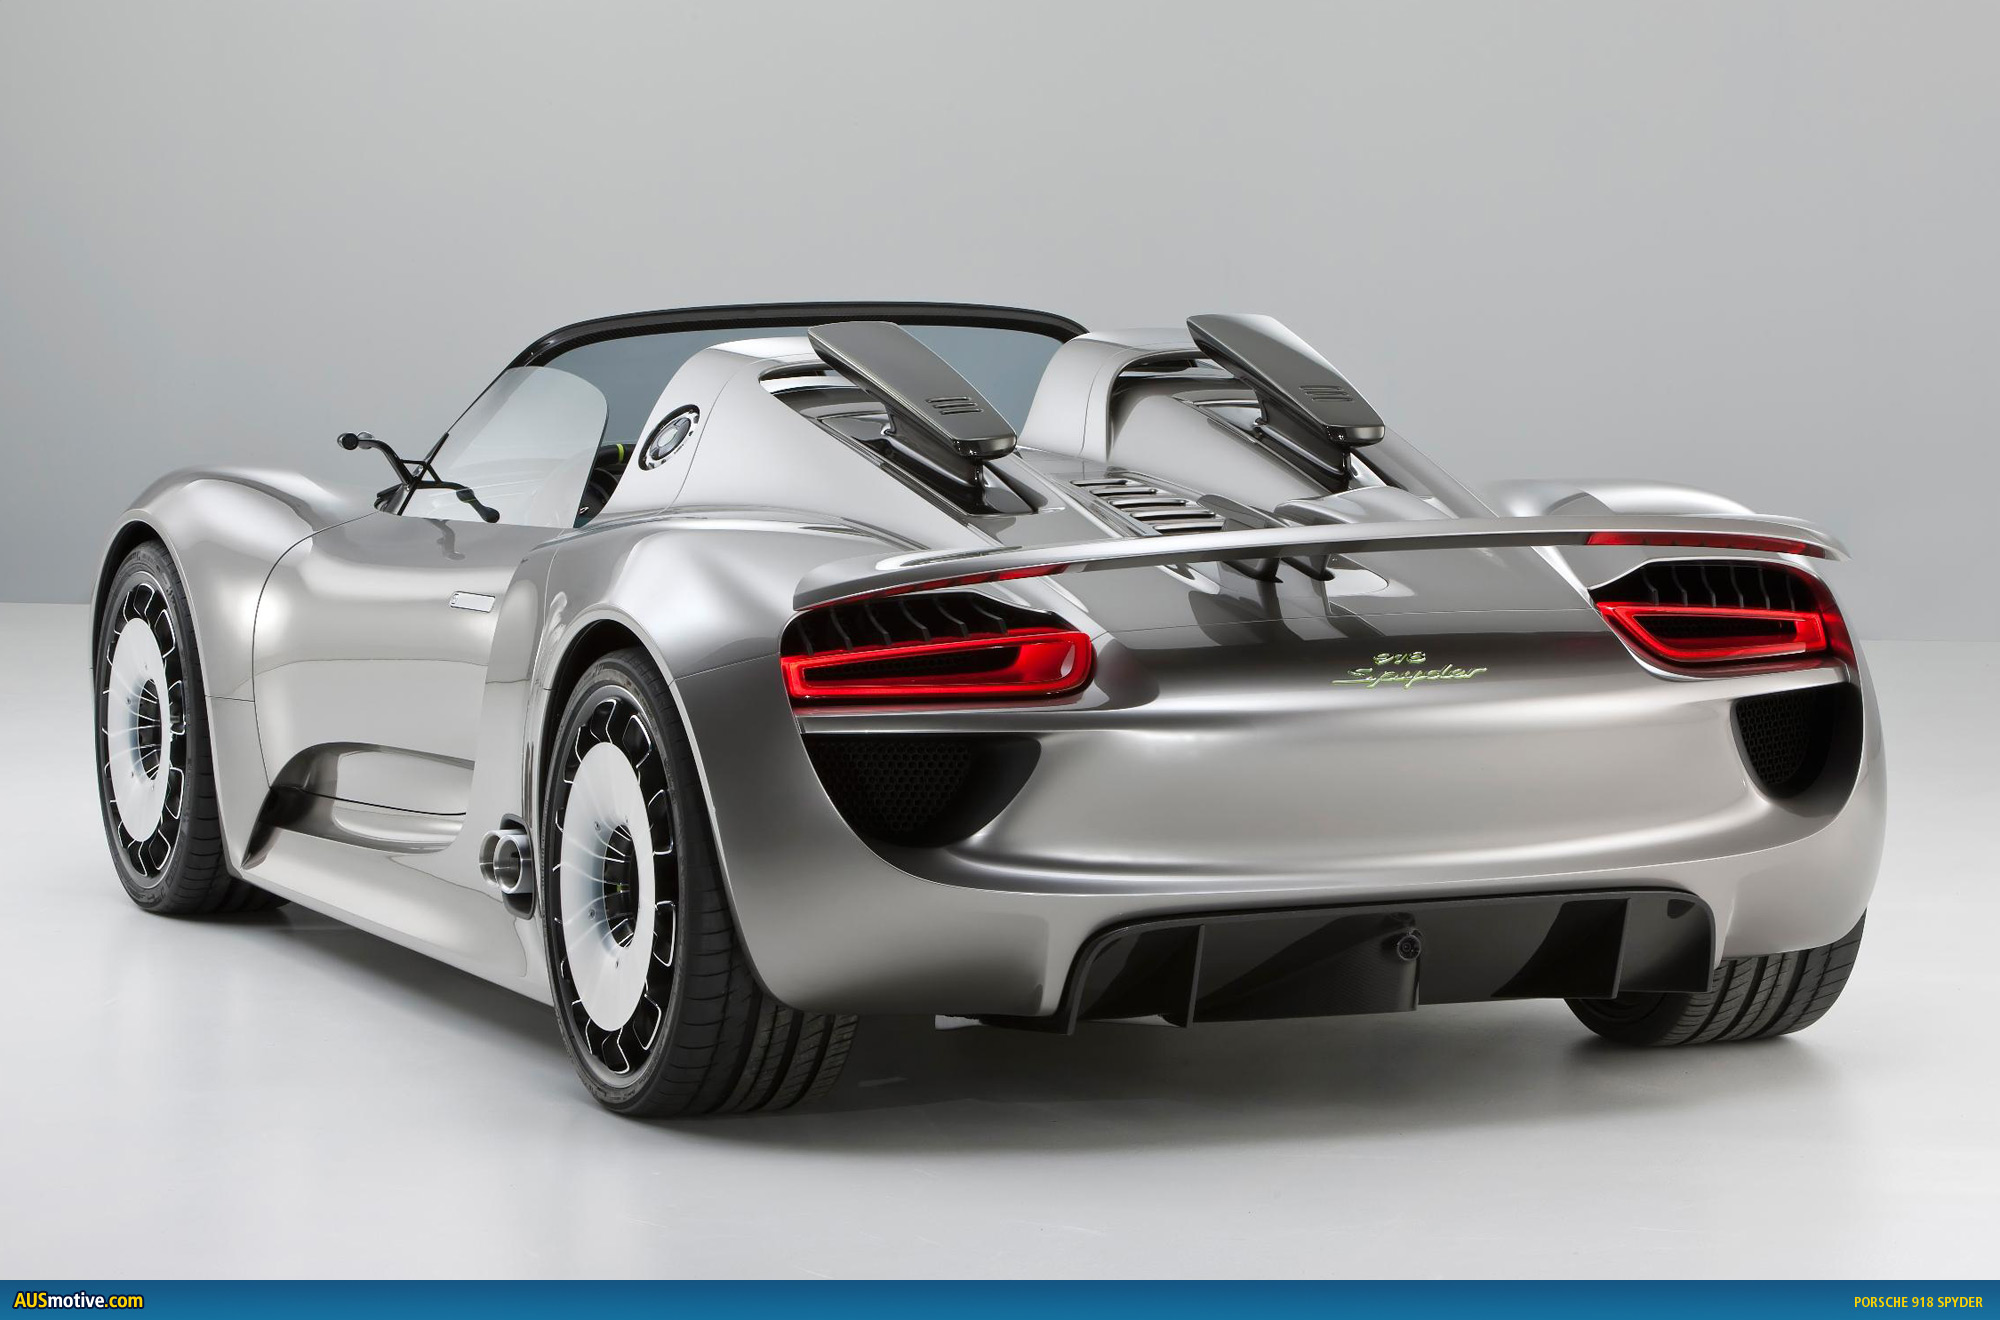 by approving full series production of the 918 spyder hybrid supercar. Black Bedroom Furniture Sets. Home Design Ideas